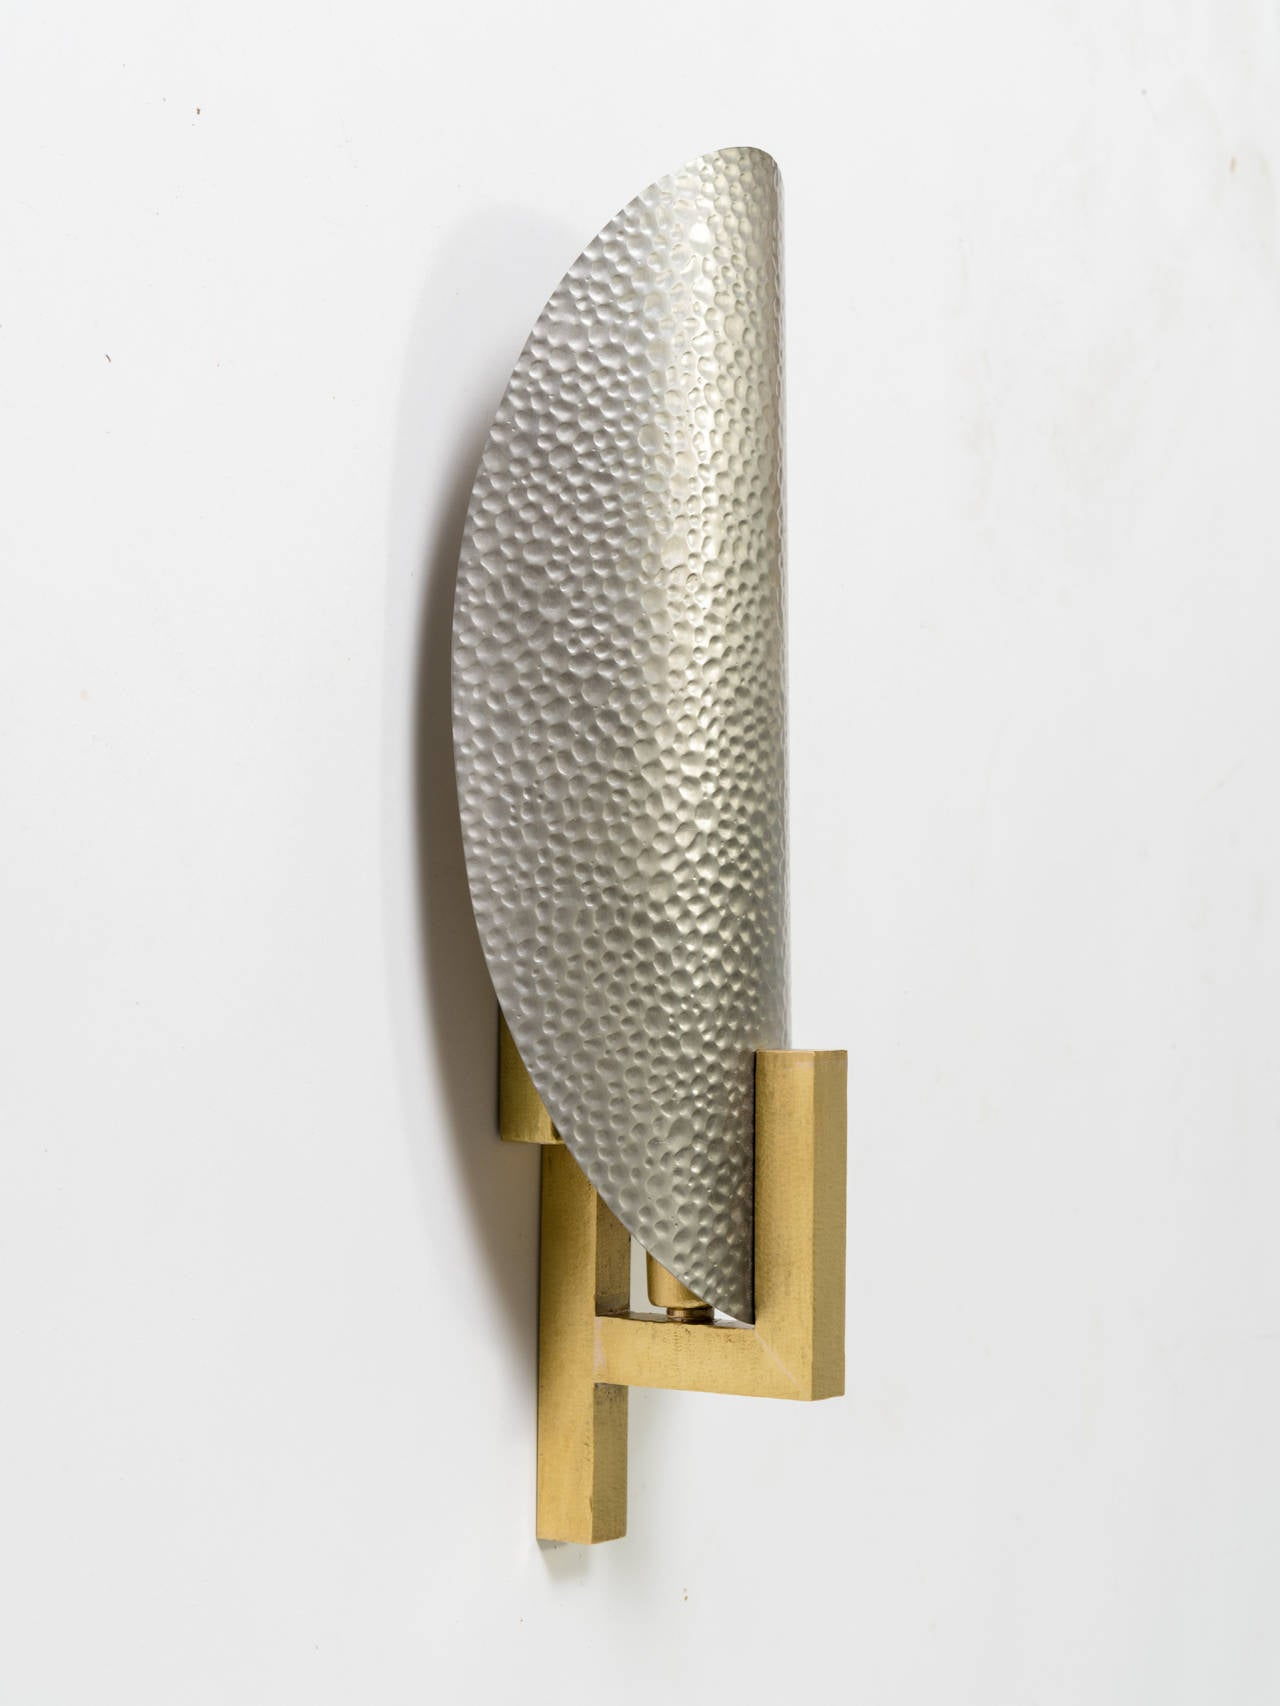 Hammered Metal and Brass Sconces For Sale at 1stdibs